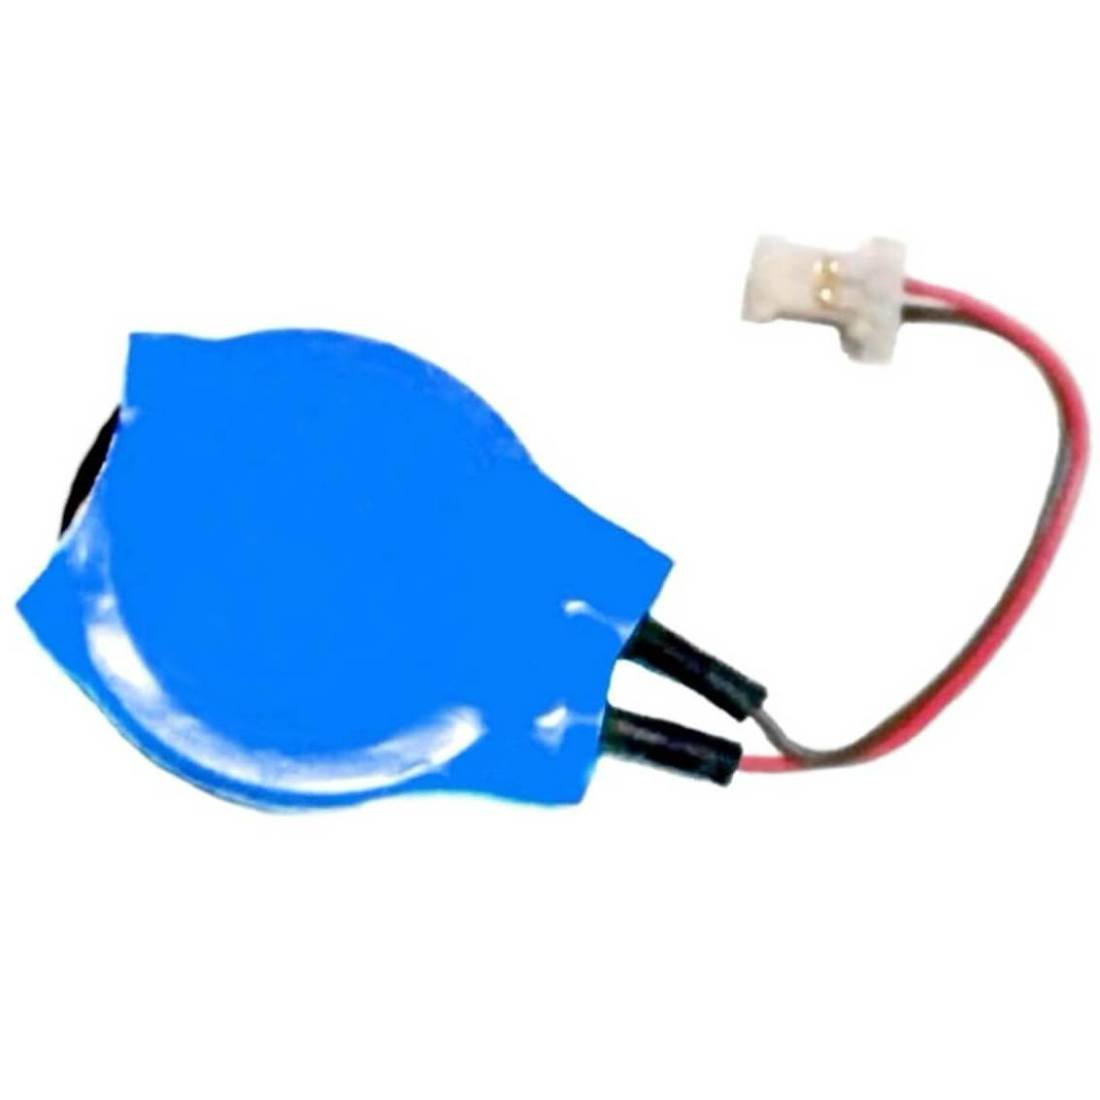 BIOS CMOS RTC Battery for Dell Alienware Alpha Steam Machine i5 i7 Desktop  by Rome Tech OEM - Yellow Light Fix - CR2032CL-23-2